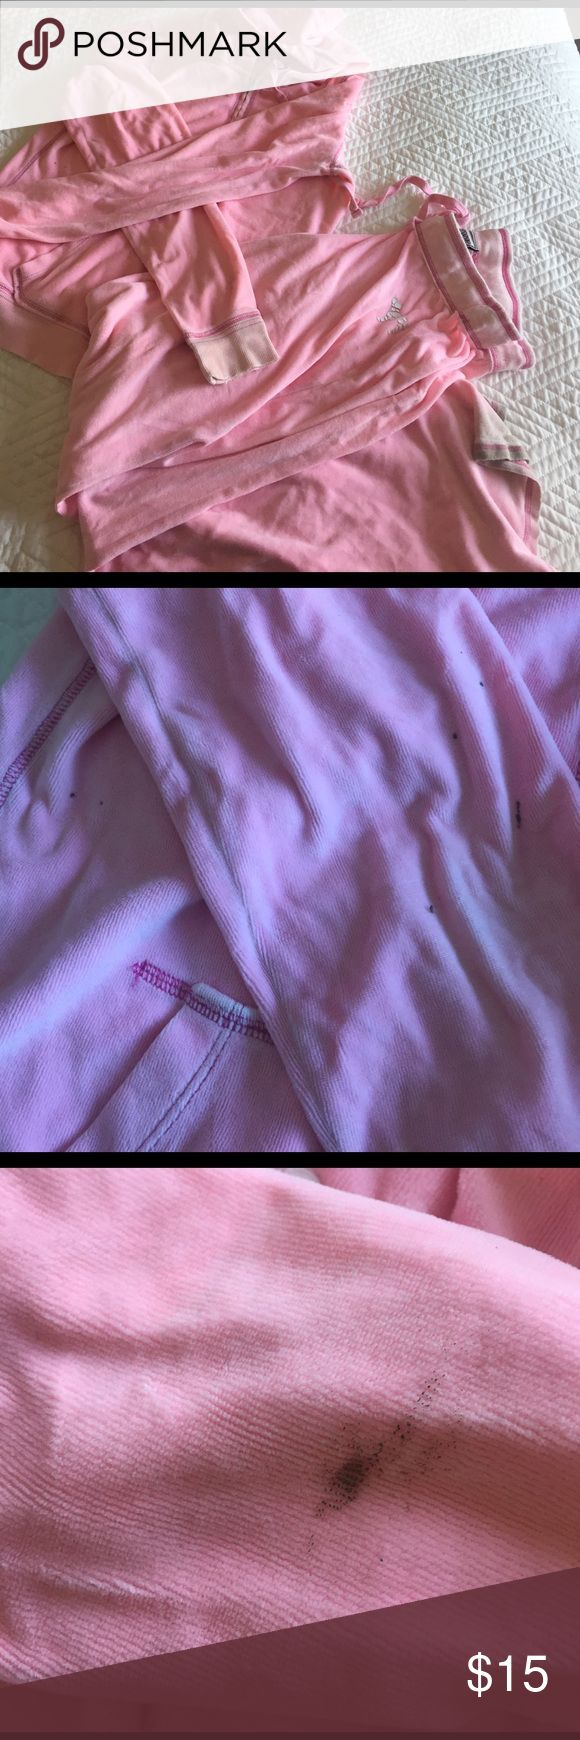 Jacket and sweat pants set These have been a lot. Very comfy. Some stains on jacket sleeves see pics. Haven't tried to remove them.Price adjusted accordingly PINK Victoria's Secret Pants